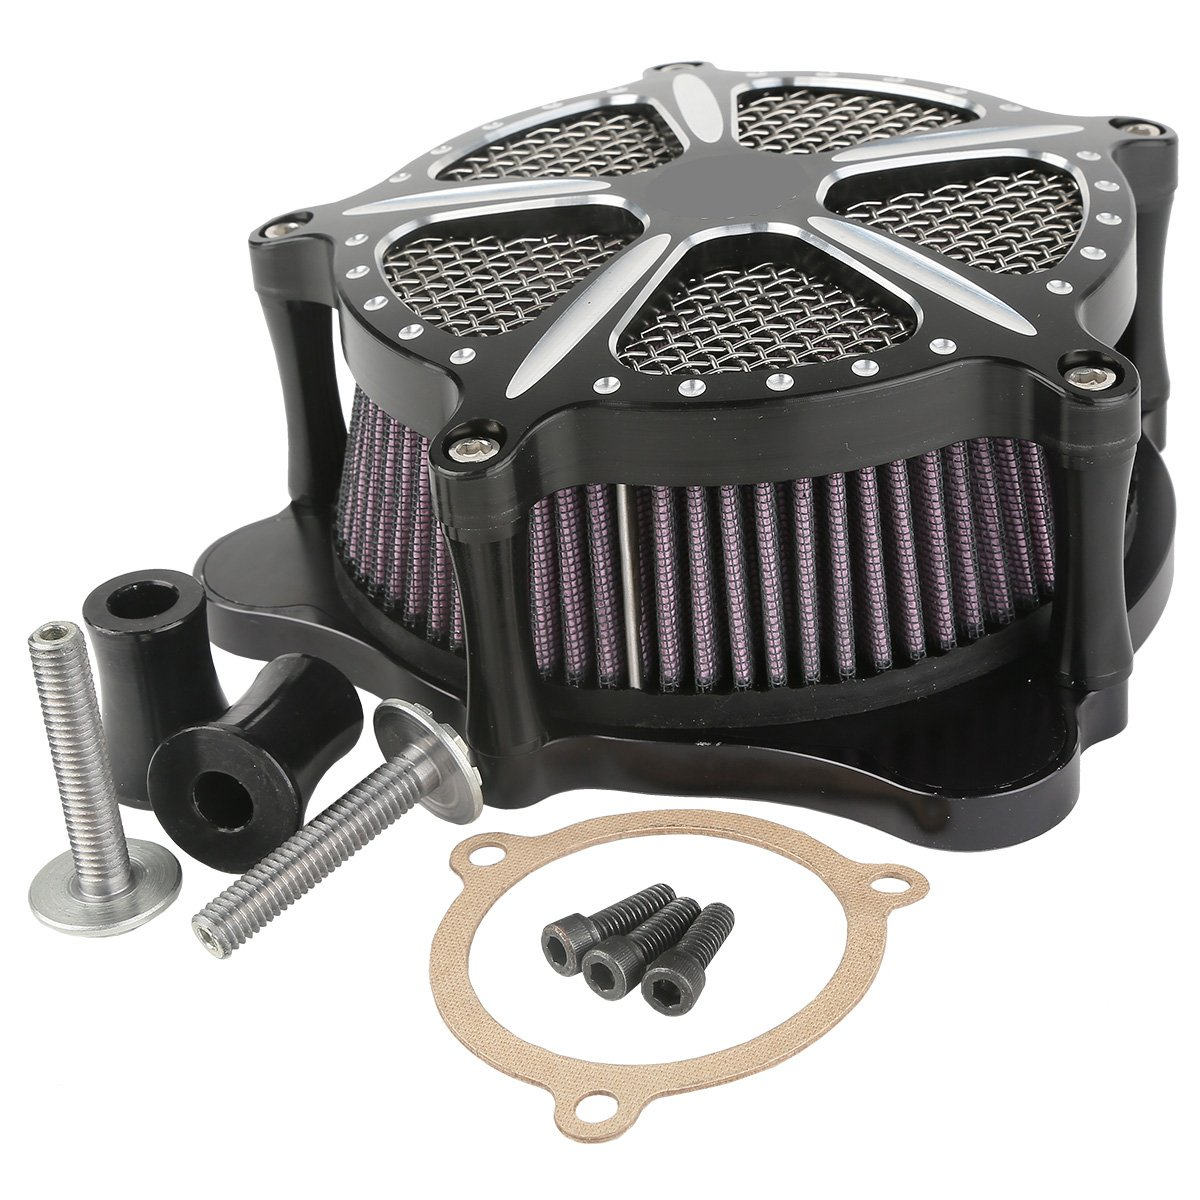 XMT-MOTO Speed-5 CNC Deep Cut Air Cleaner Filter For Harley Touring FLHR FLHT FLHX 2008-2016 by XMT-MOTO (Image #8)